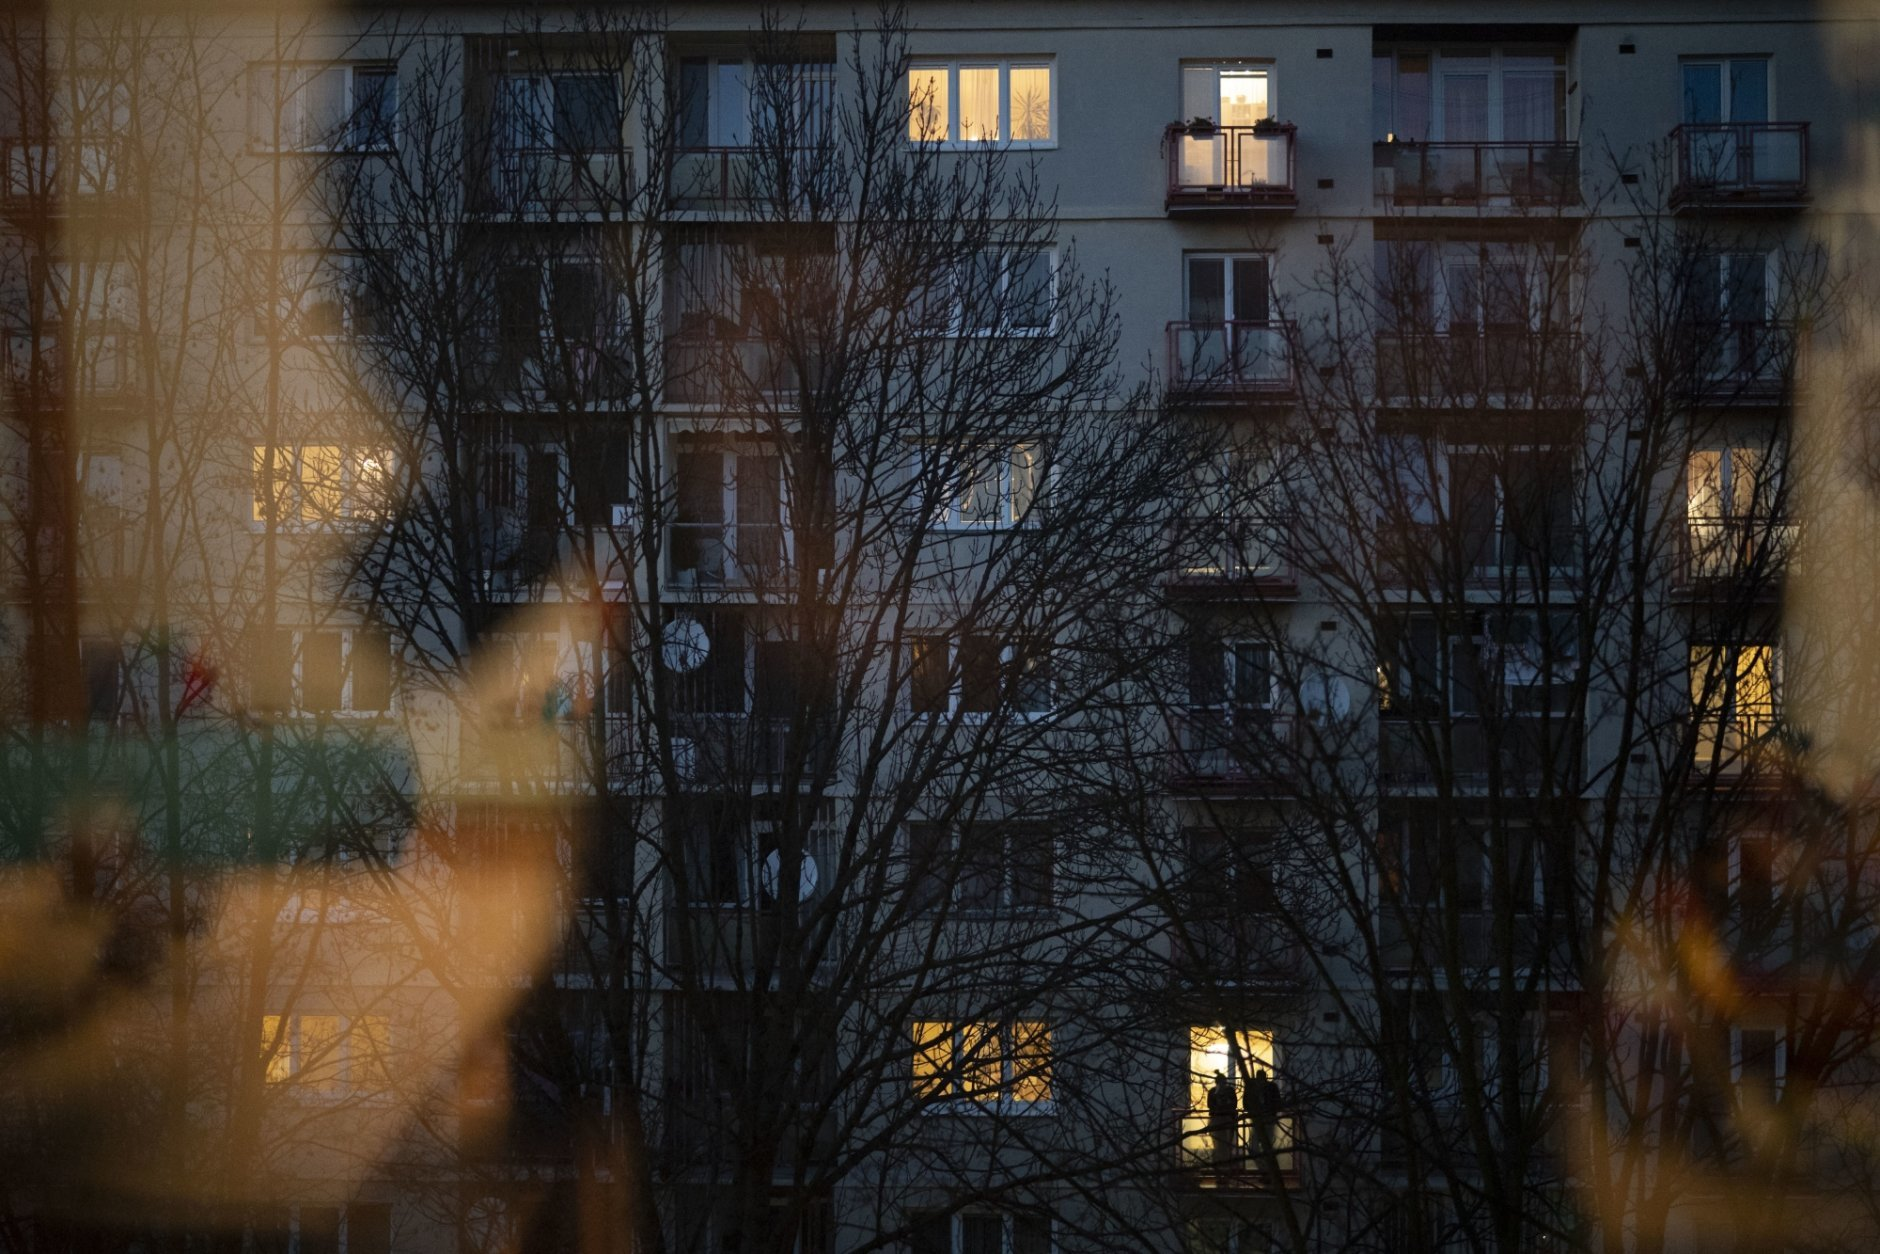 In this Nov. 11, 2018, photo, a couple stands on the balcony of their apartment in Zilina, Slovakia. An investigation by The Associated Press has found that women and their newborns in Slovakia are routinely, unjustifiably and illegally detained in hospitals across the European Union country. (AP Photo/Felipe Dana)